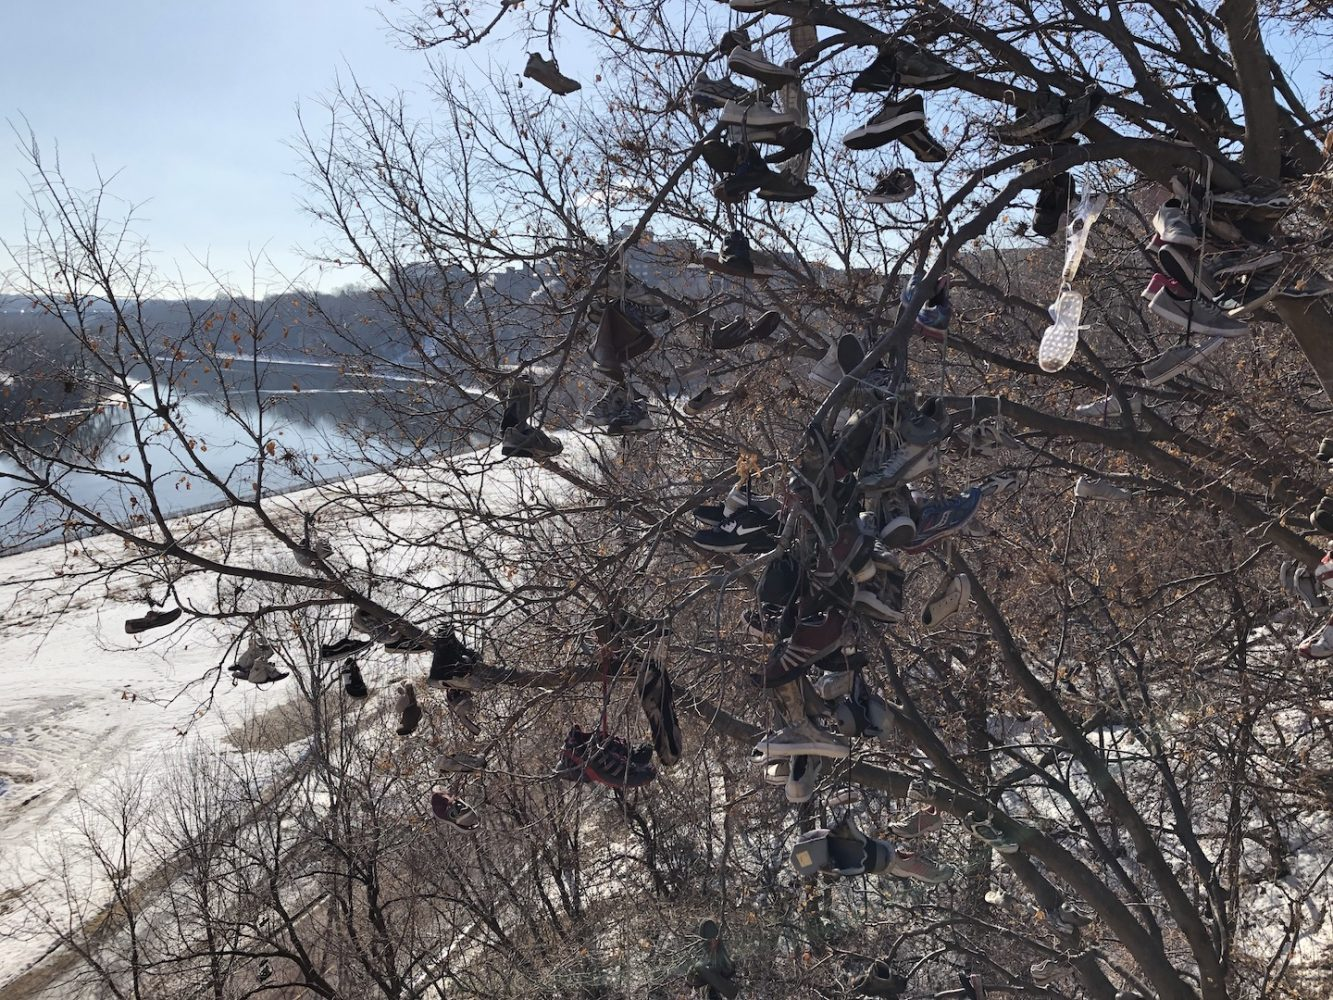 Dozens of shoes hang from branches with the Mississippi River in the background.